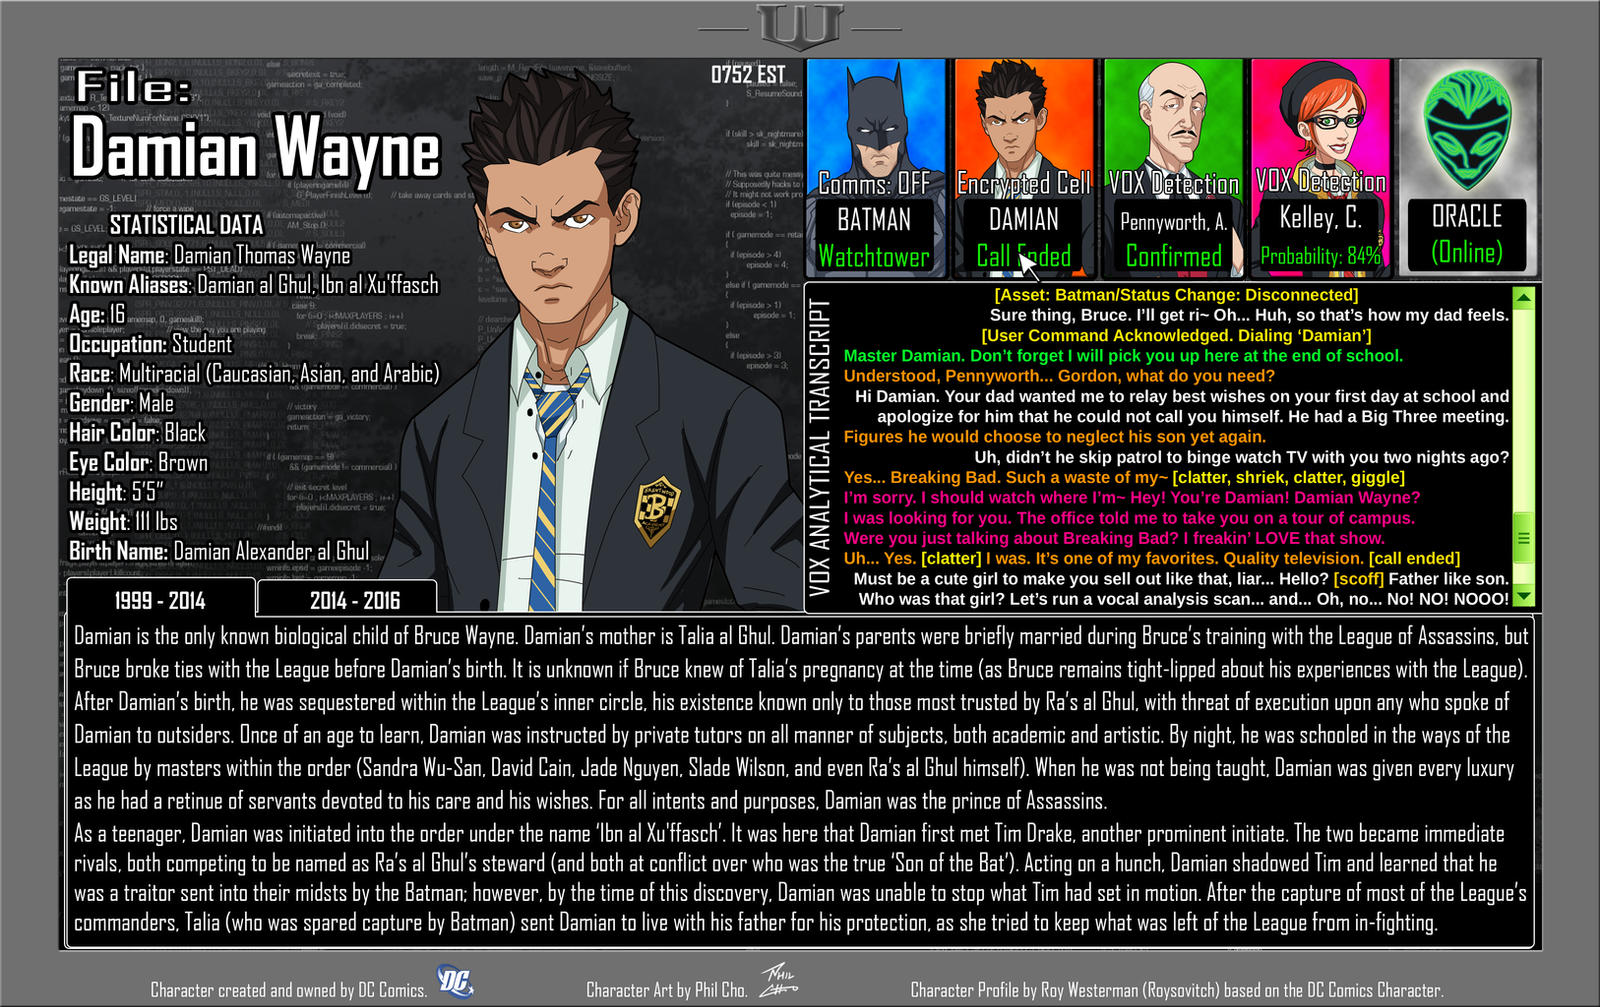 Oracle Files - Damian Wayne 1999-2014 by Roysovitch